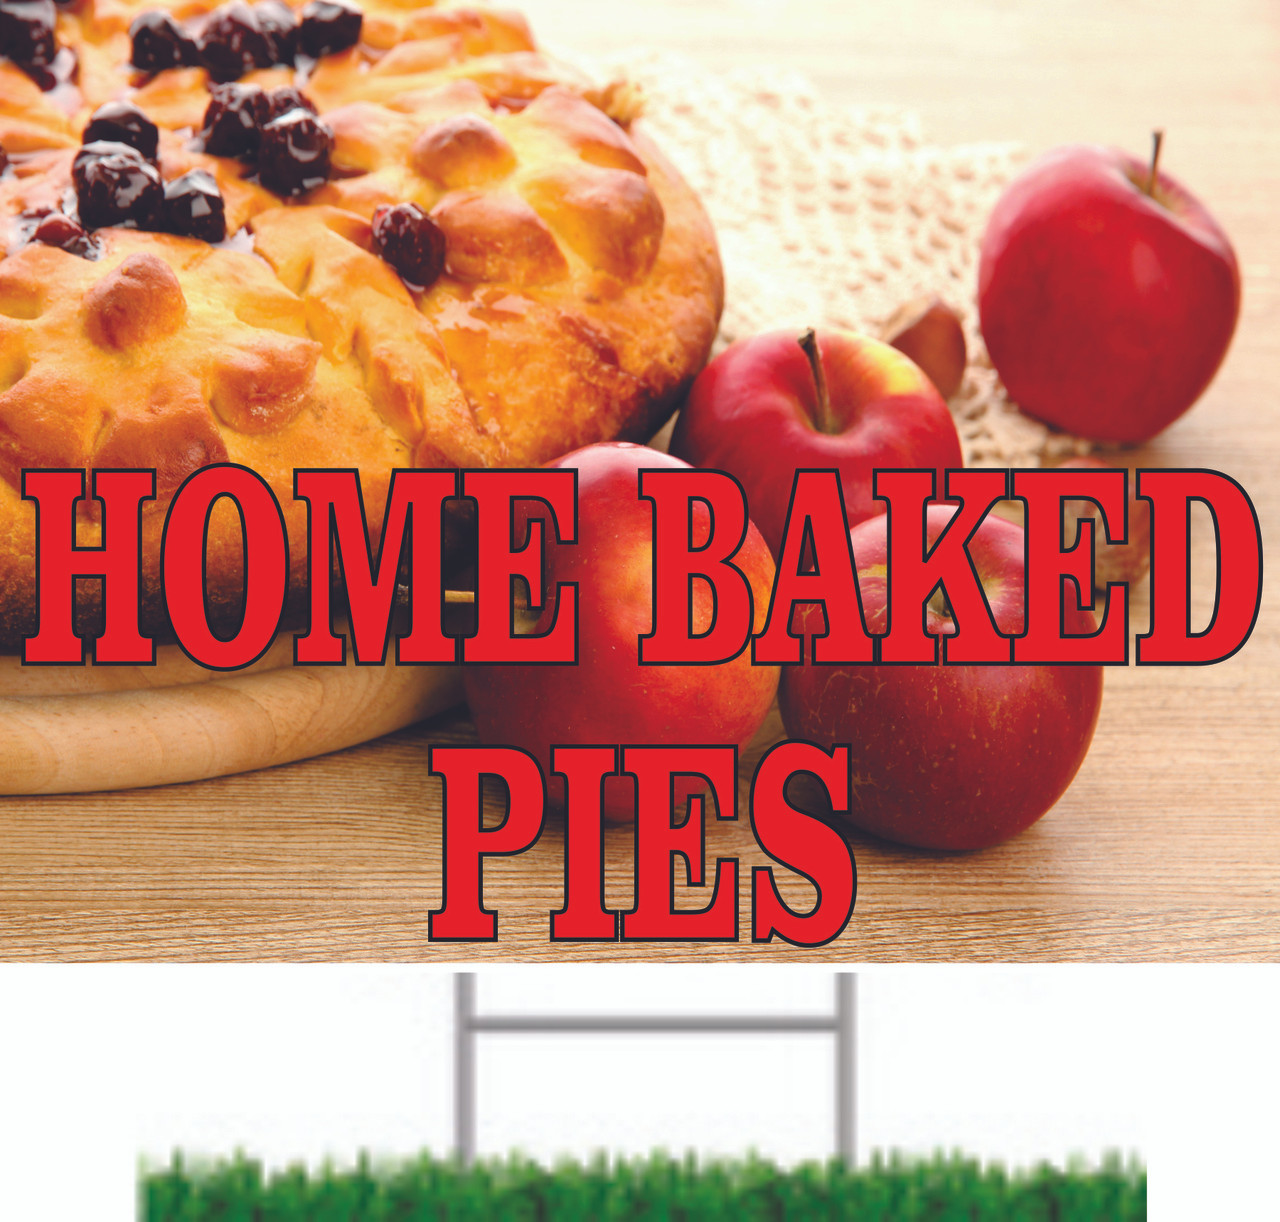 Home Baked Pies Yard/Road Sign draws in shoppers.